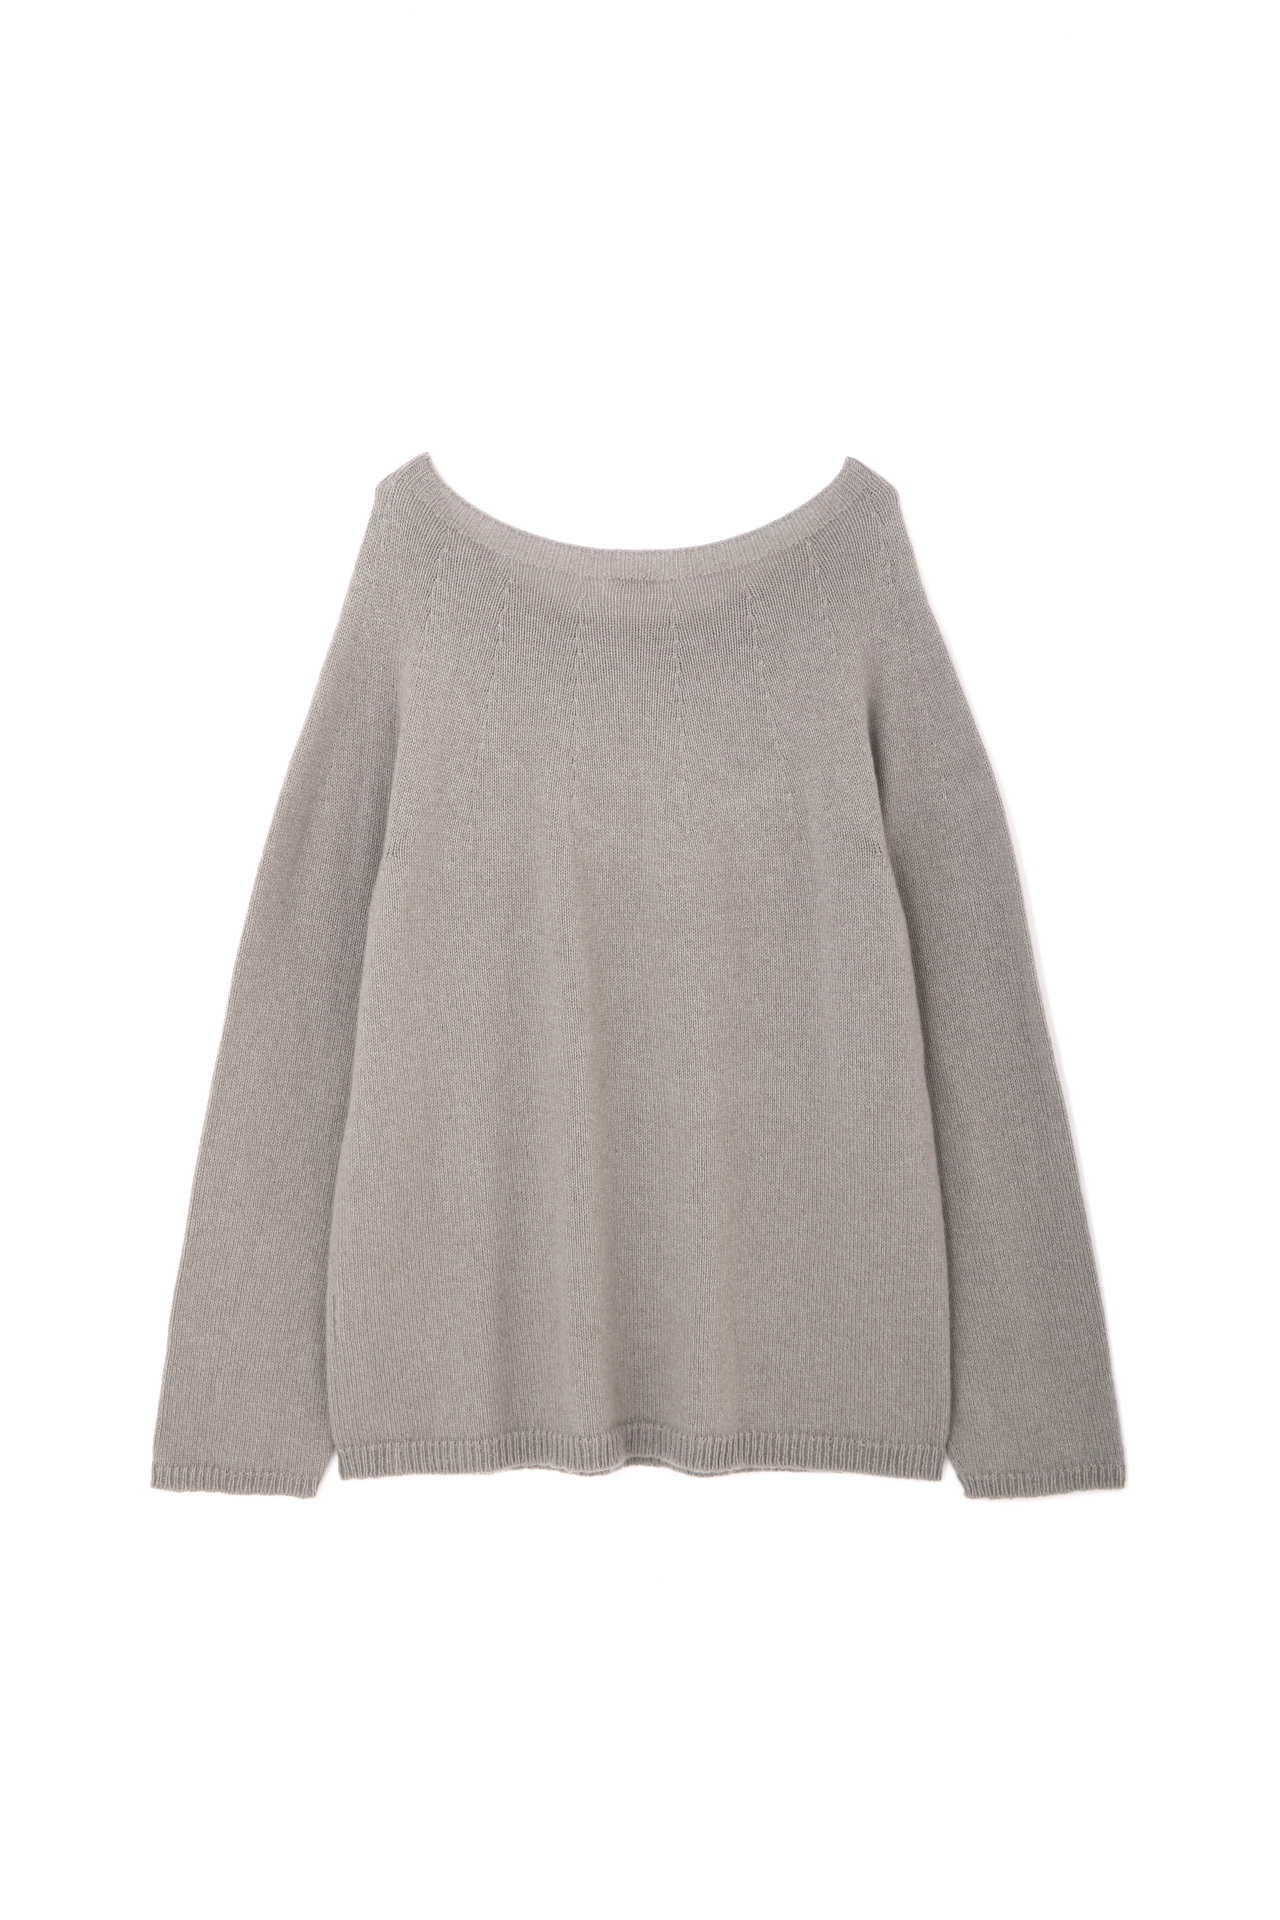 COTTON CASHMERE BED JUMPER